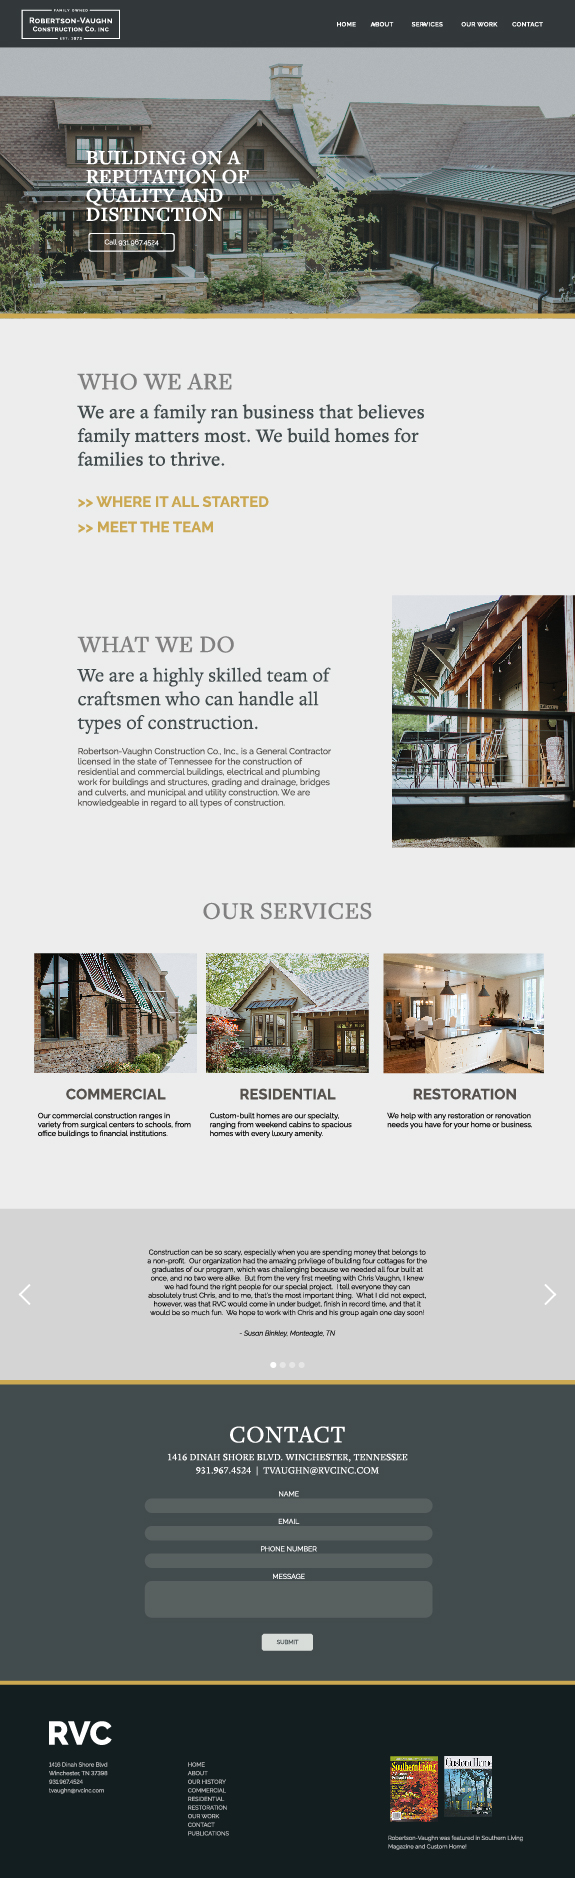 Robertson-Vaughn Construction Co. Website Design Home Page overview layout